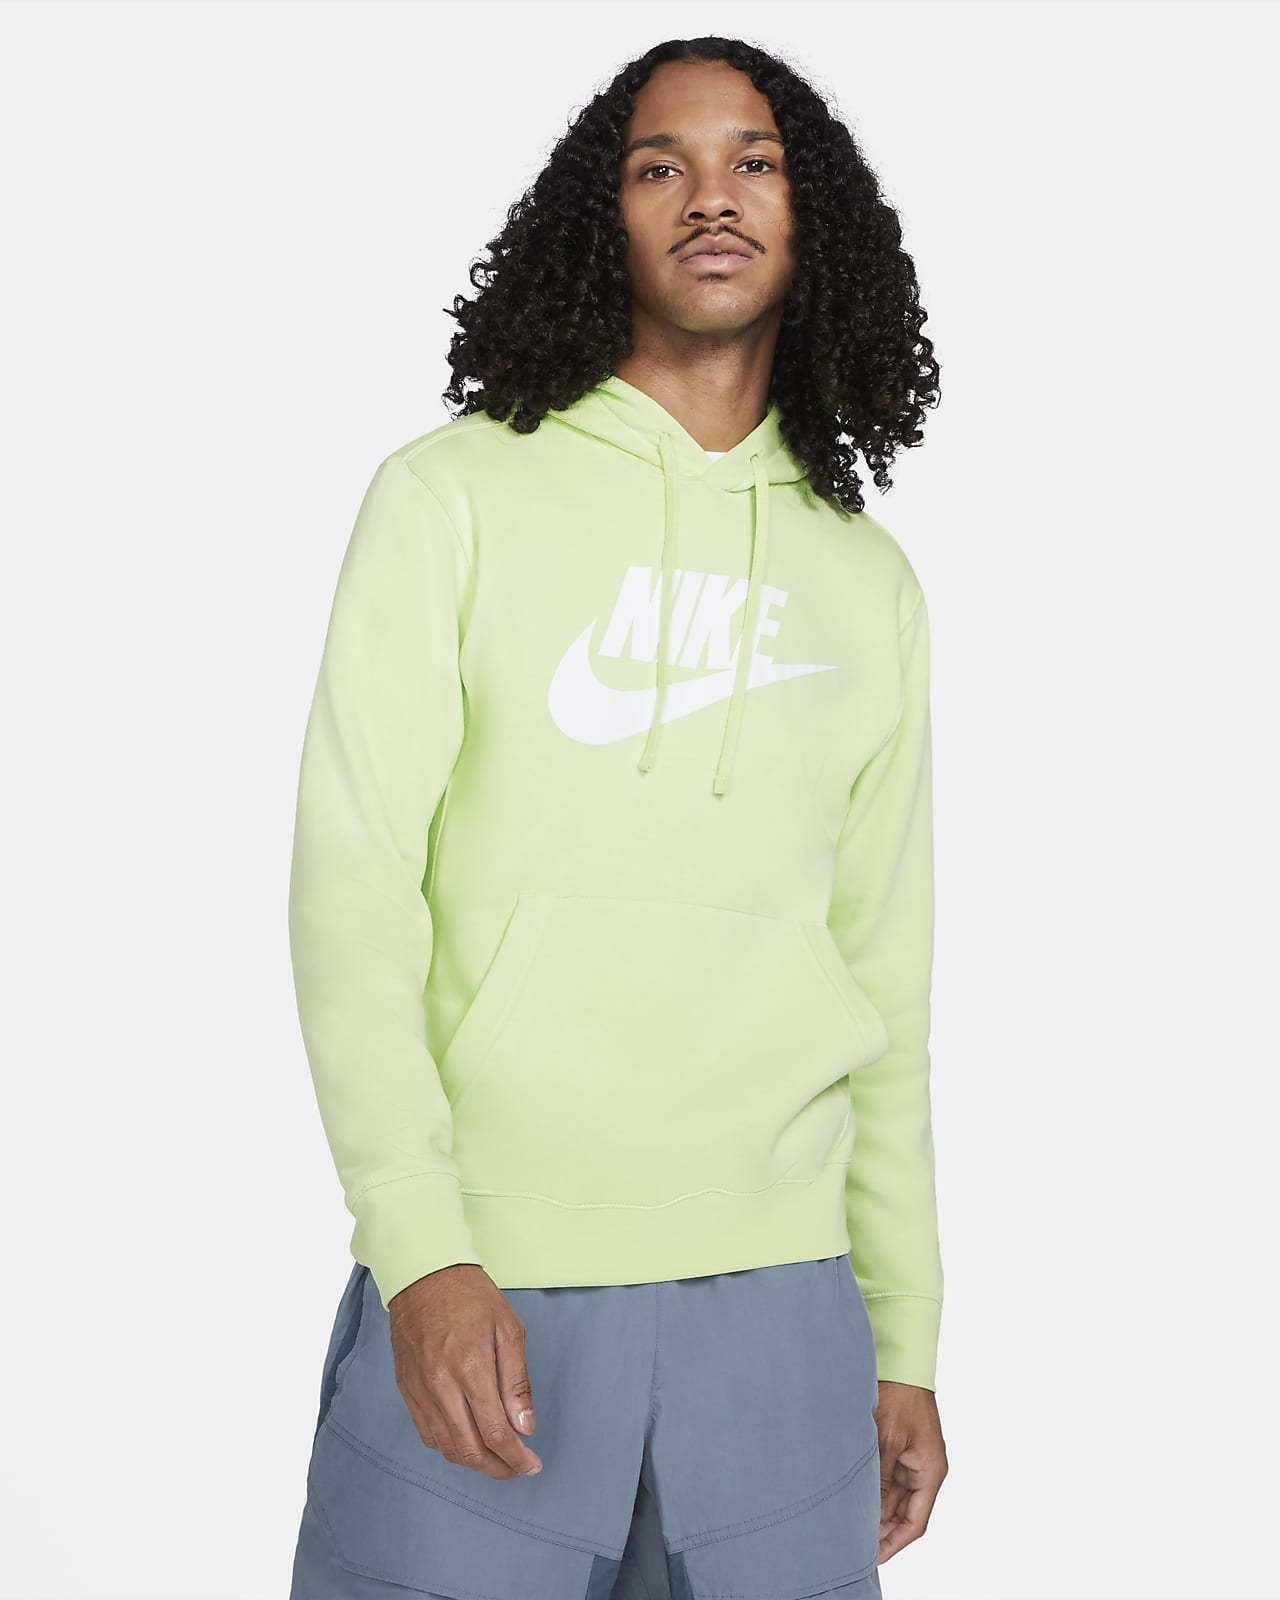 Sweat à capuche à motif Nike Sportswear Club Fleece pour Homme